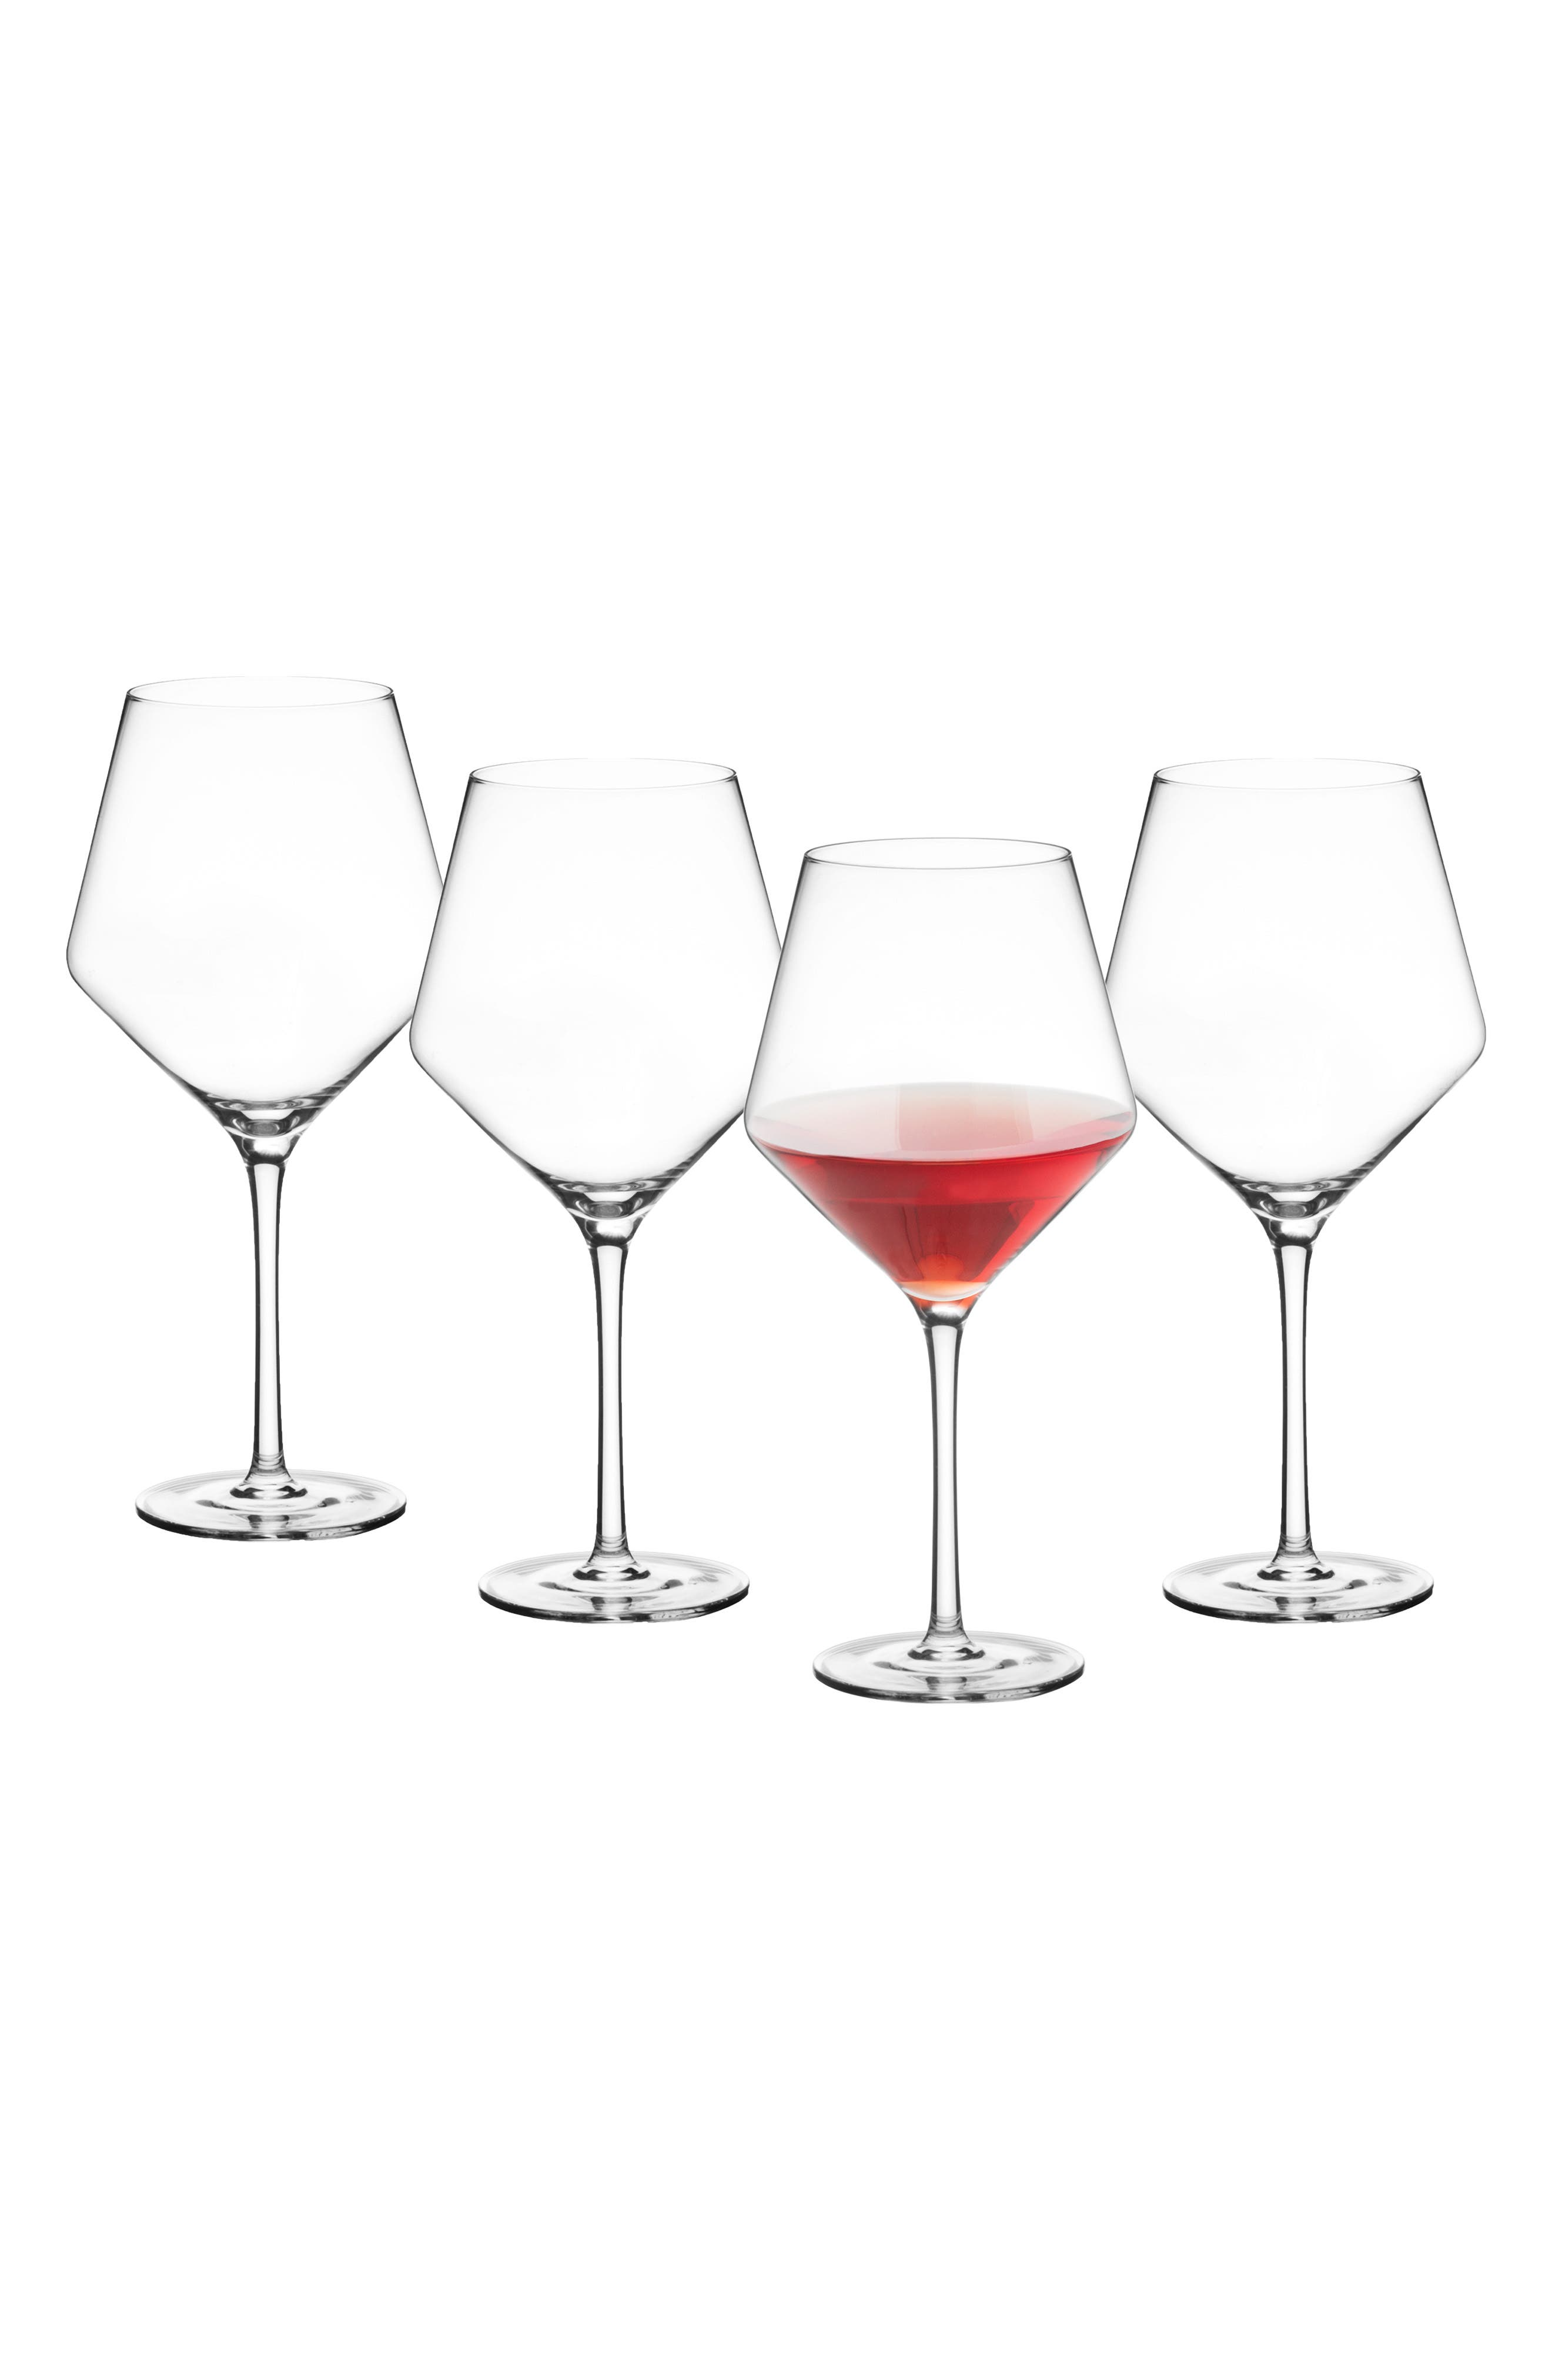 Estate Collection Set of 4 Monogram Red Wine Glasses,                         Main,                         color, BLANK